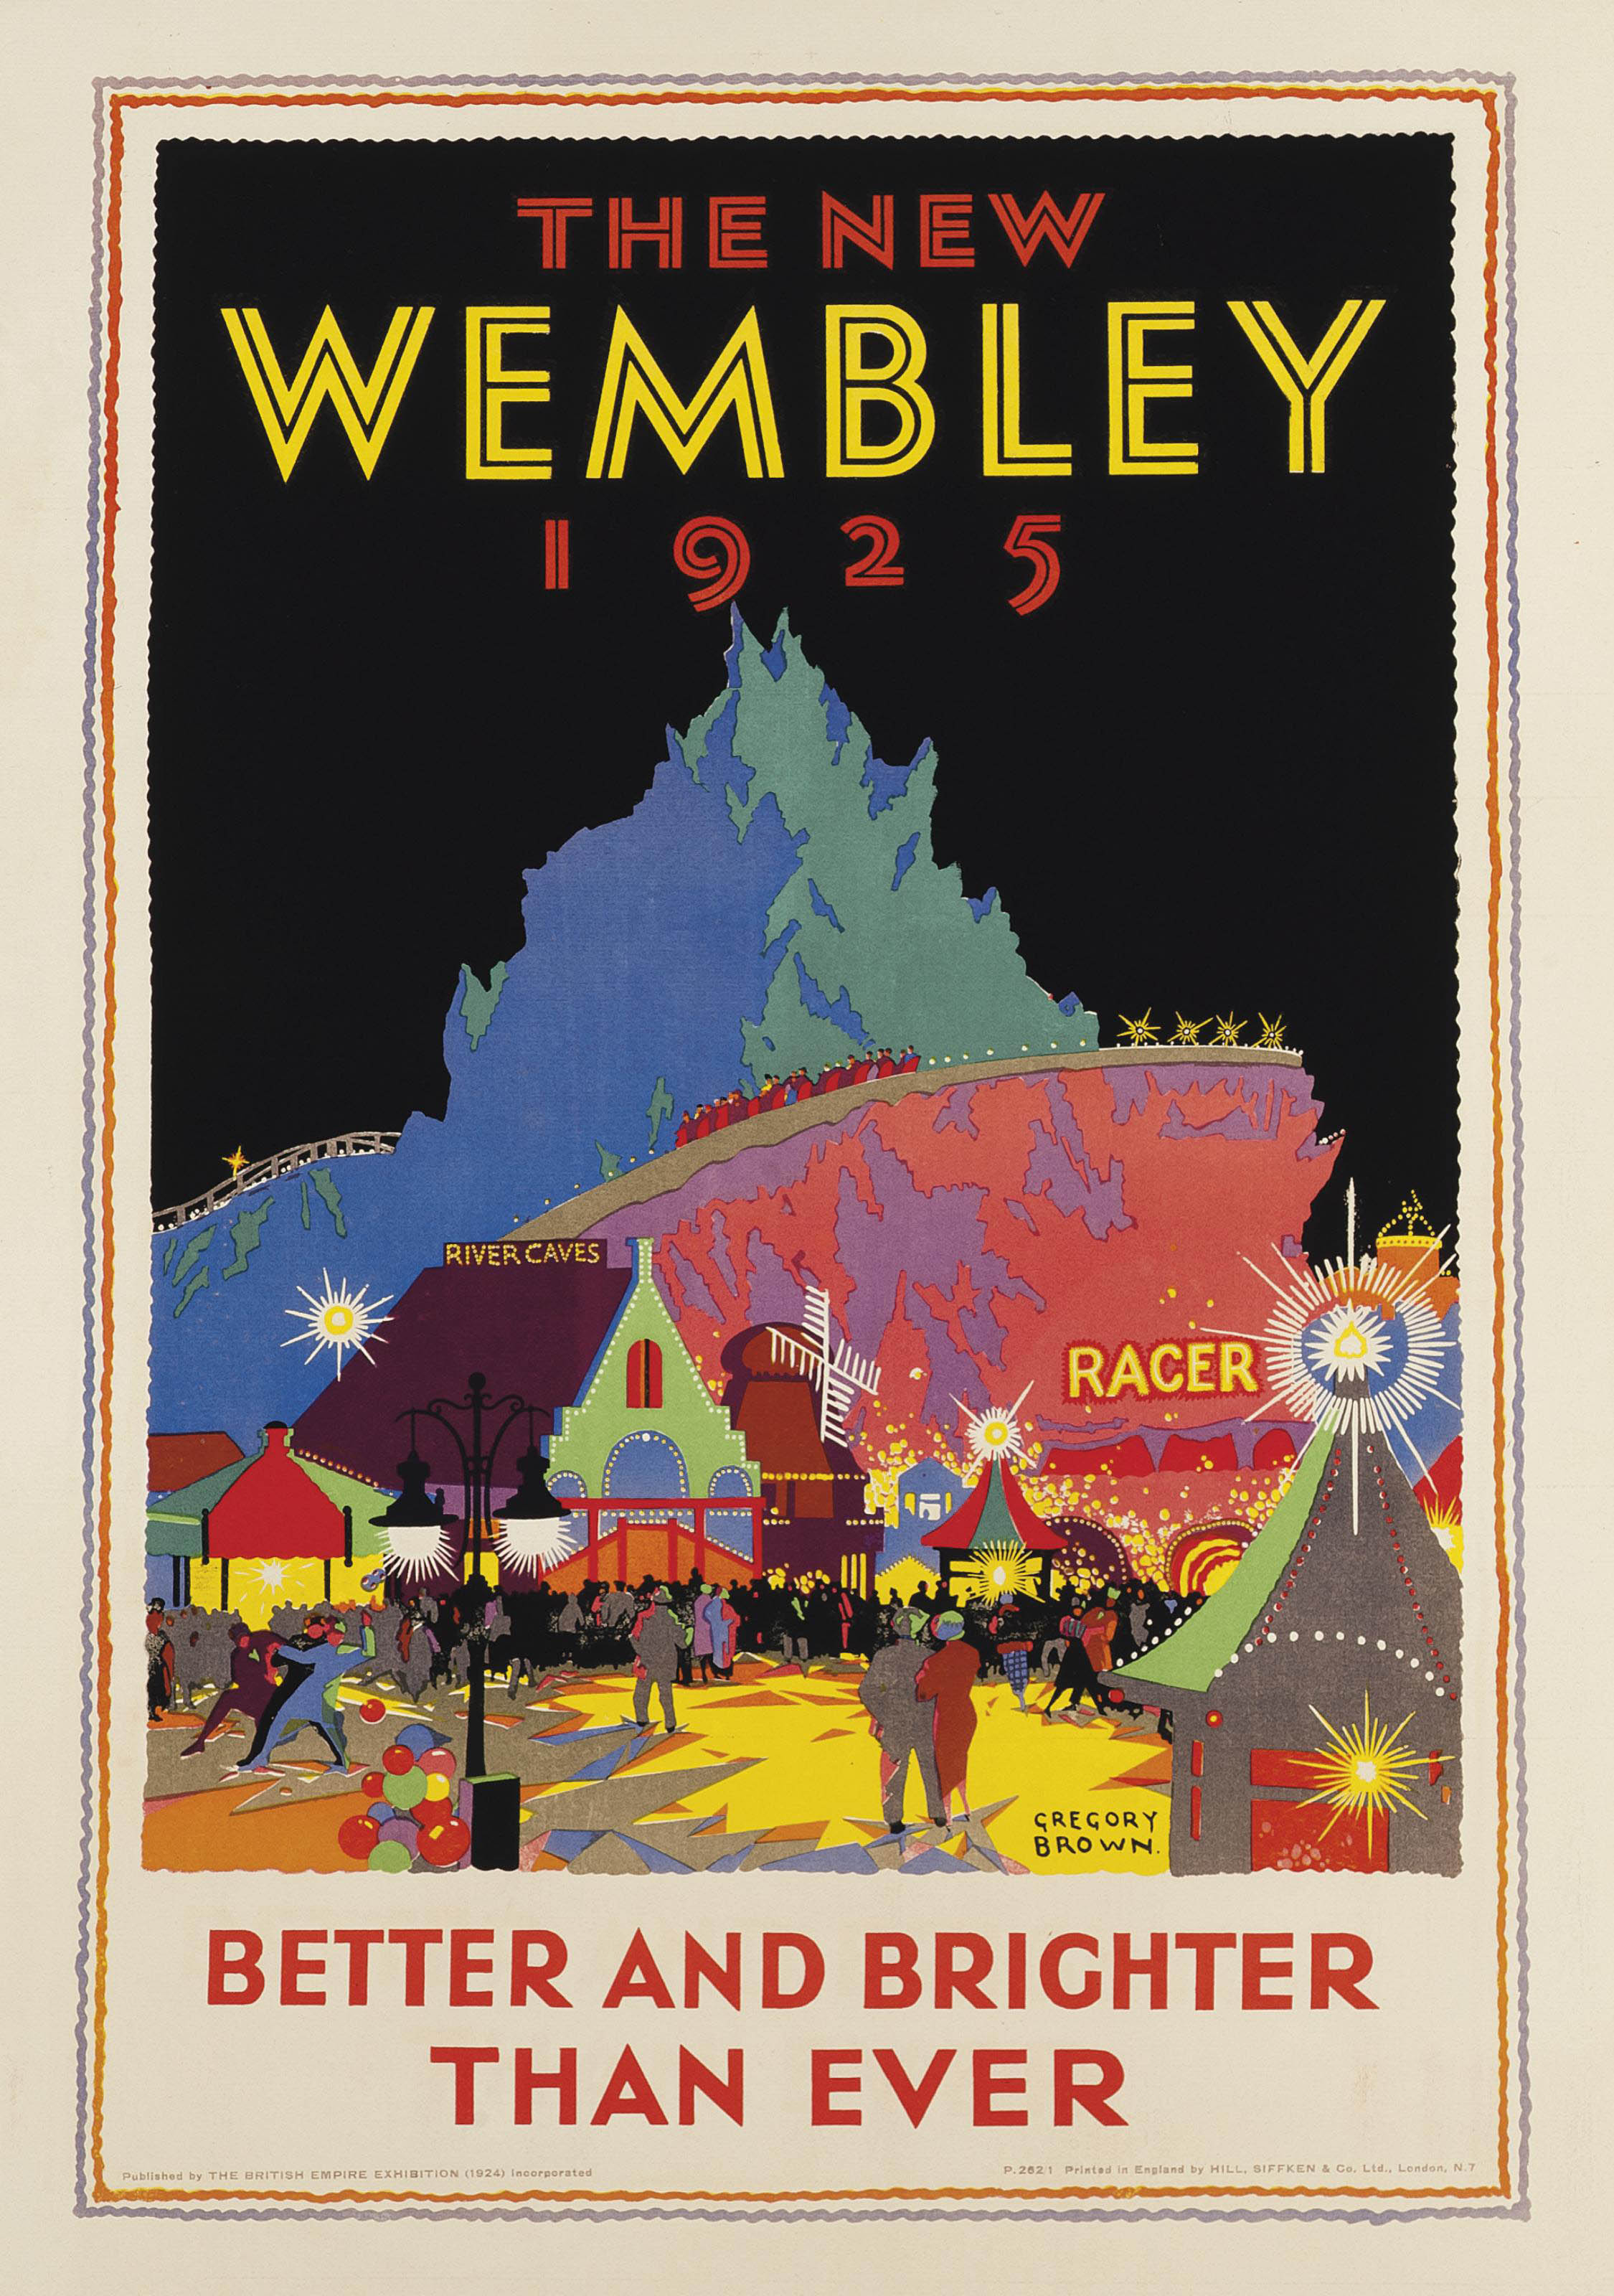 THE NEW WEMBLEY 1925